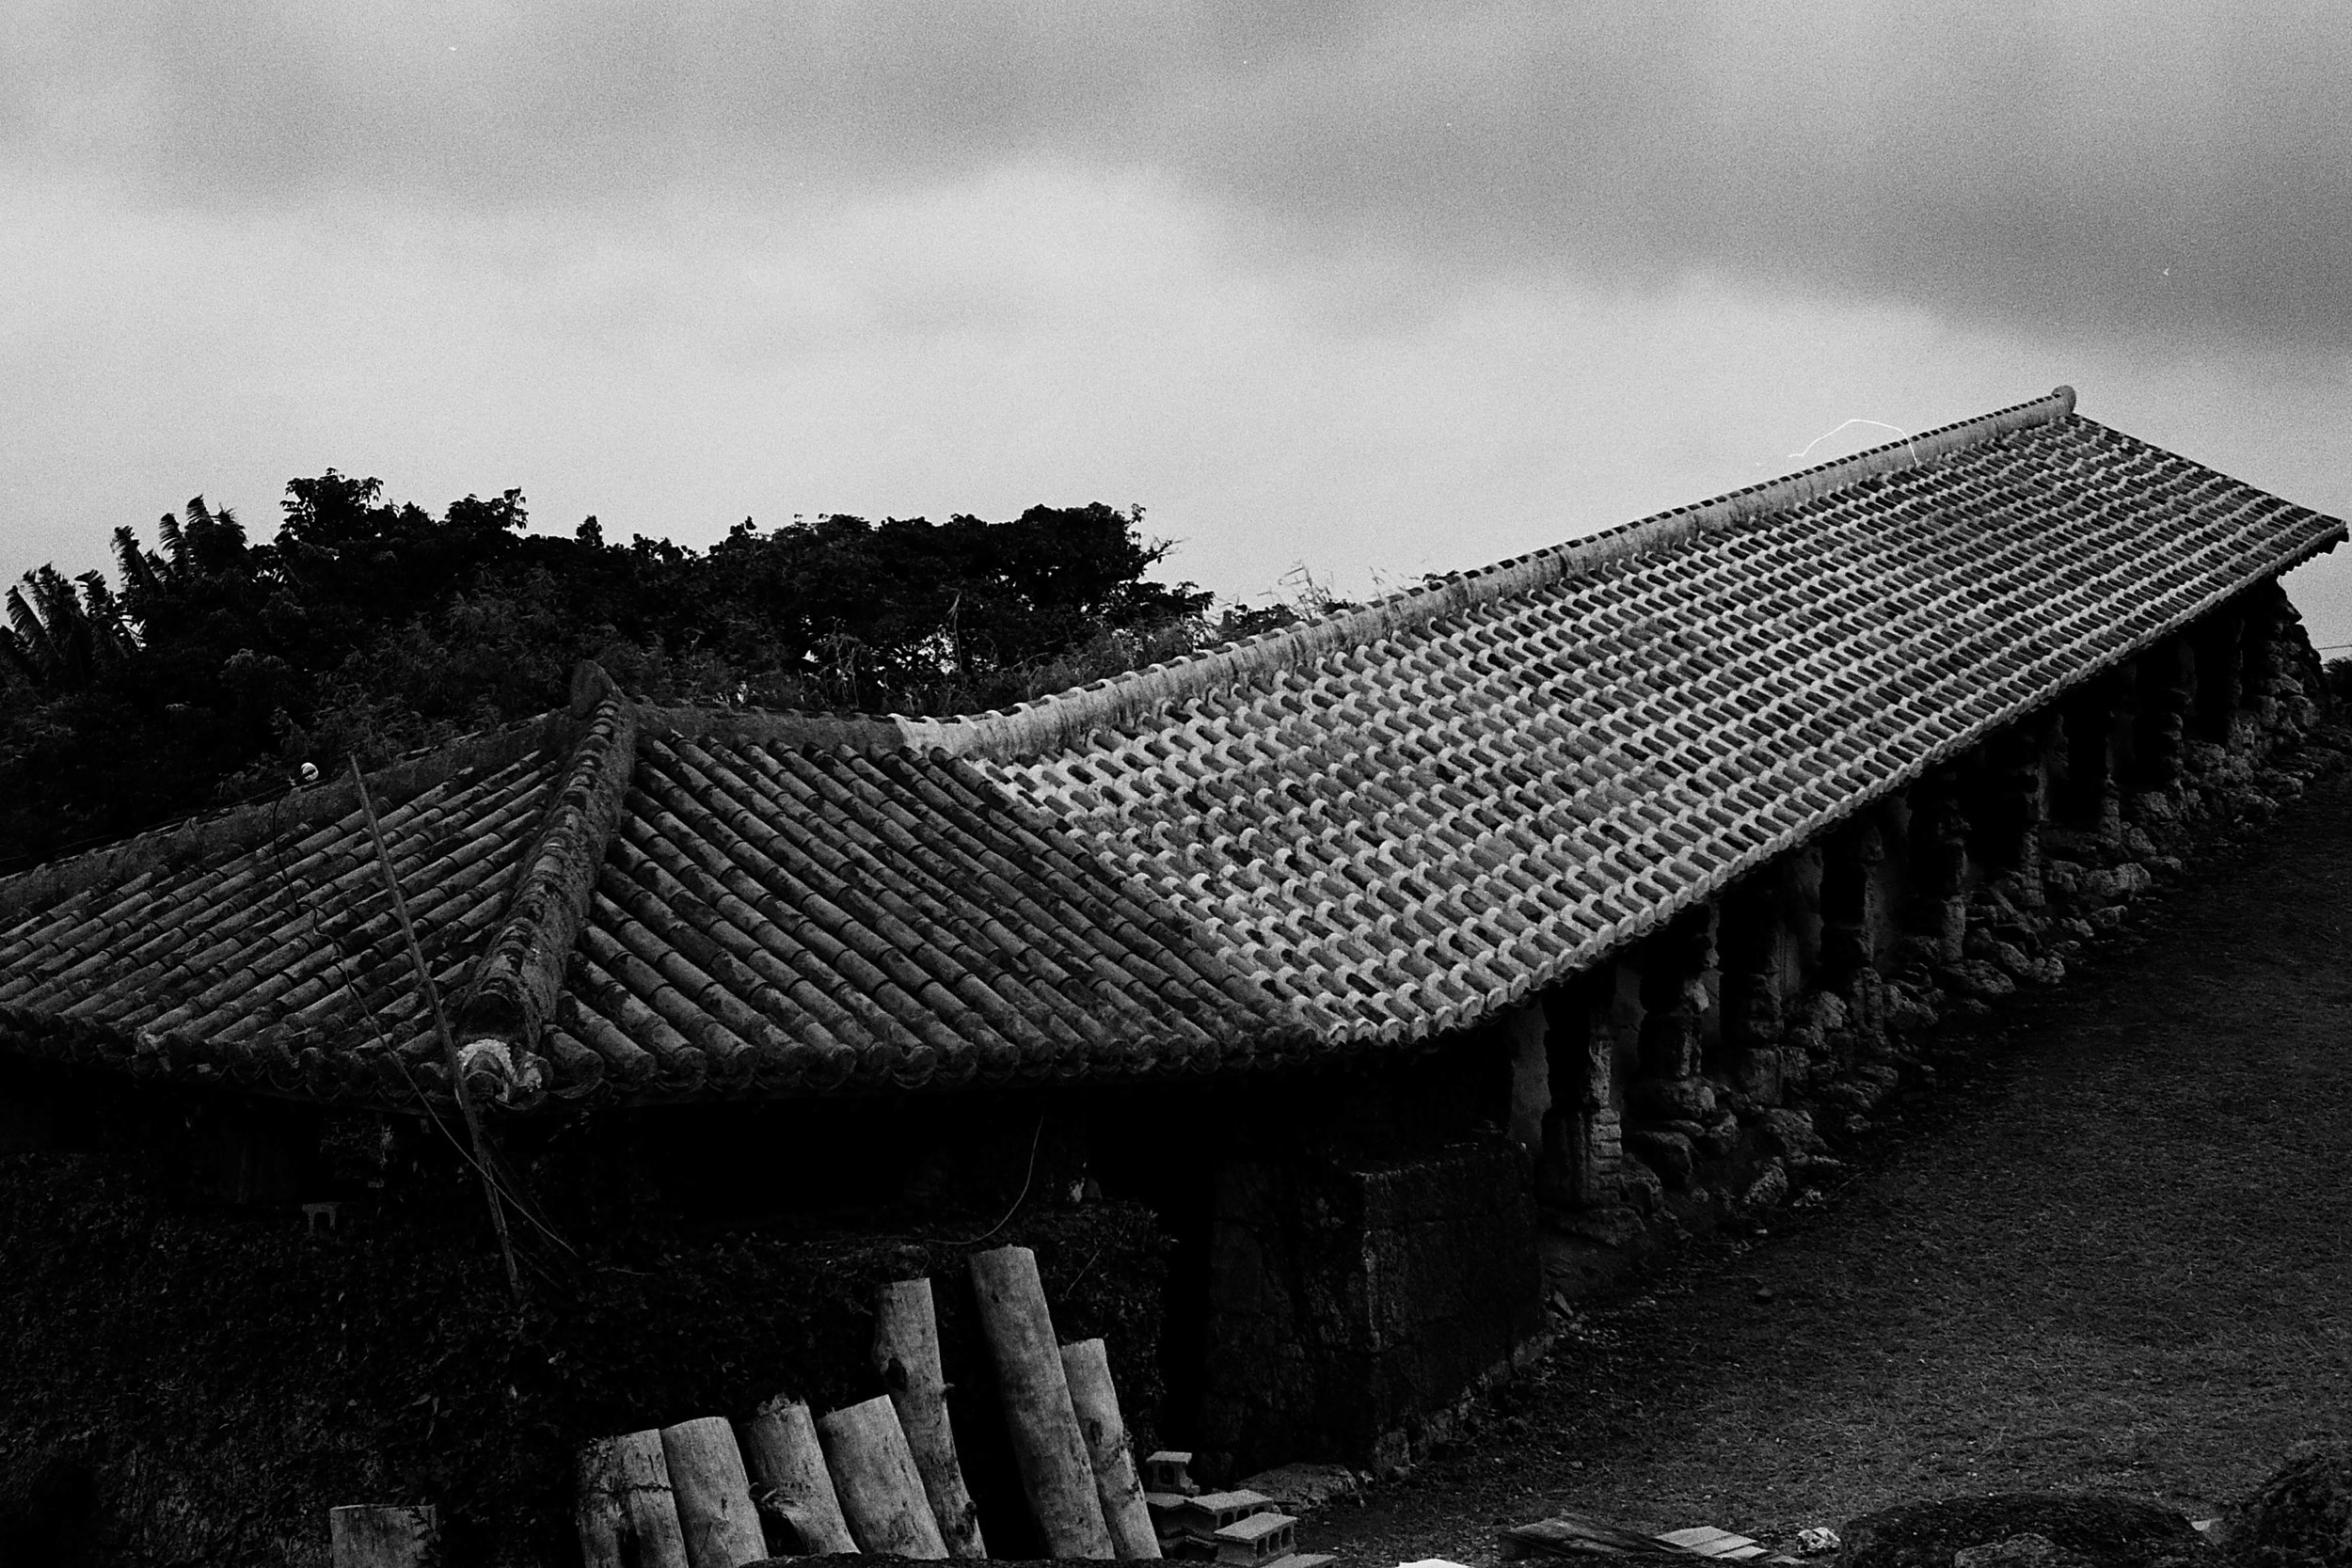 Leica M6 Summicron/35mm  This long slanting dwelling is where the pottery is fired